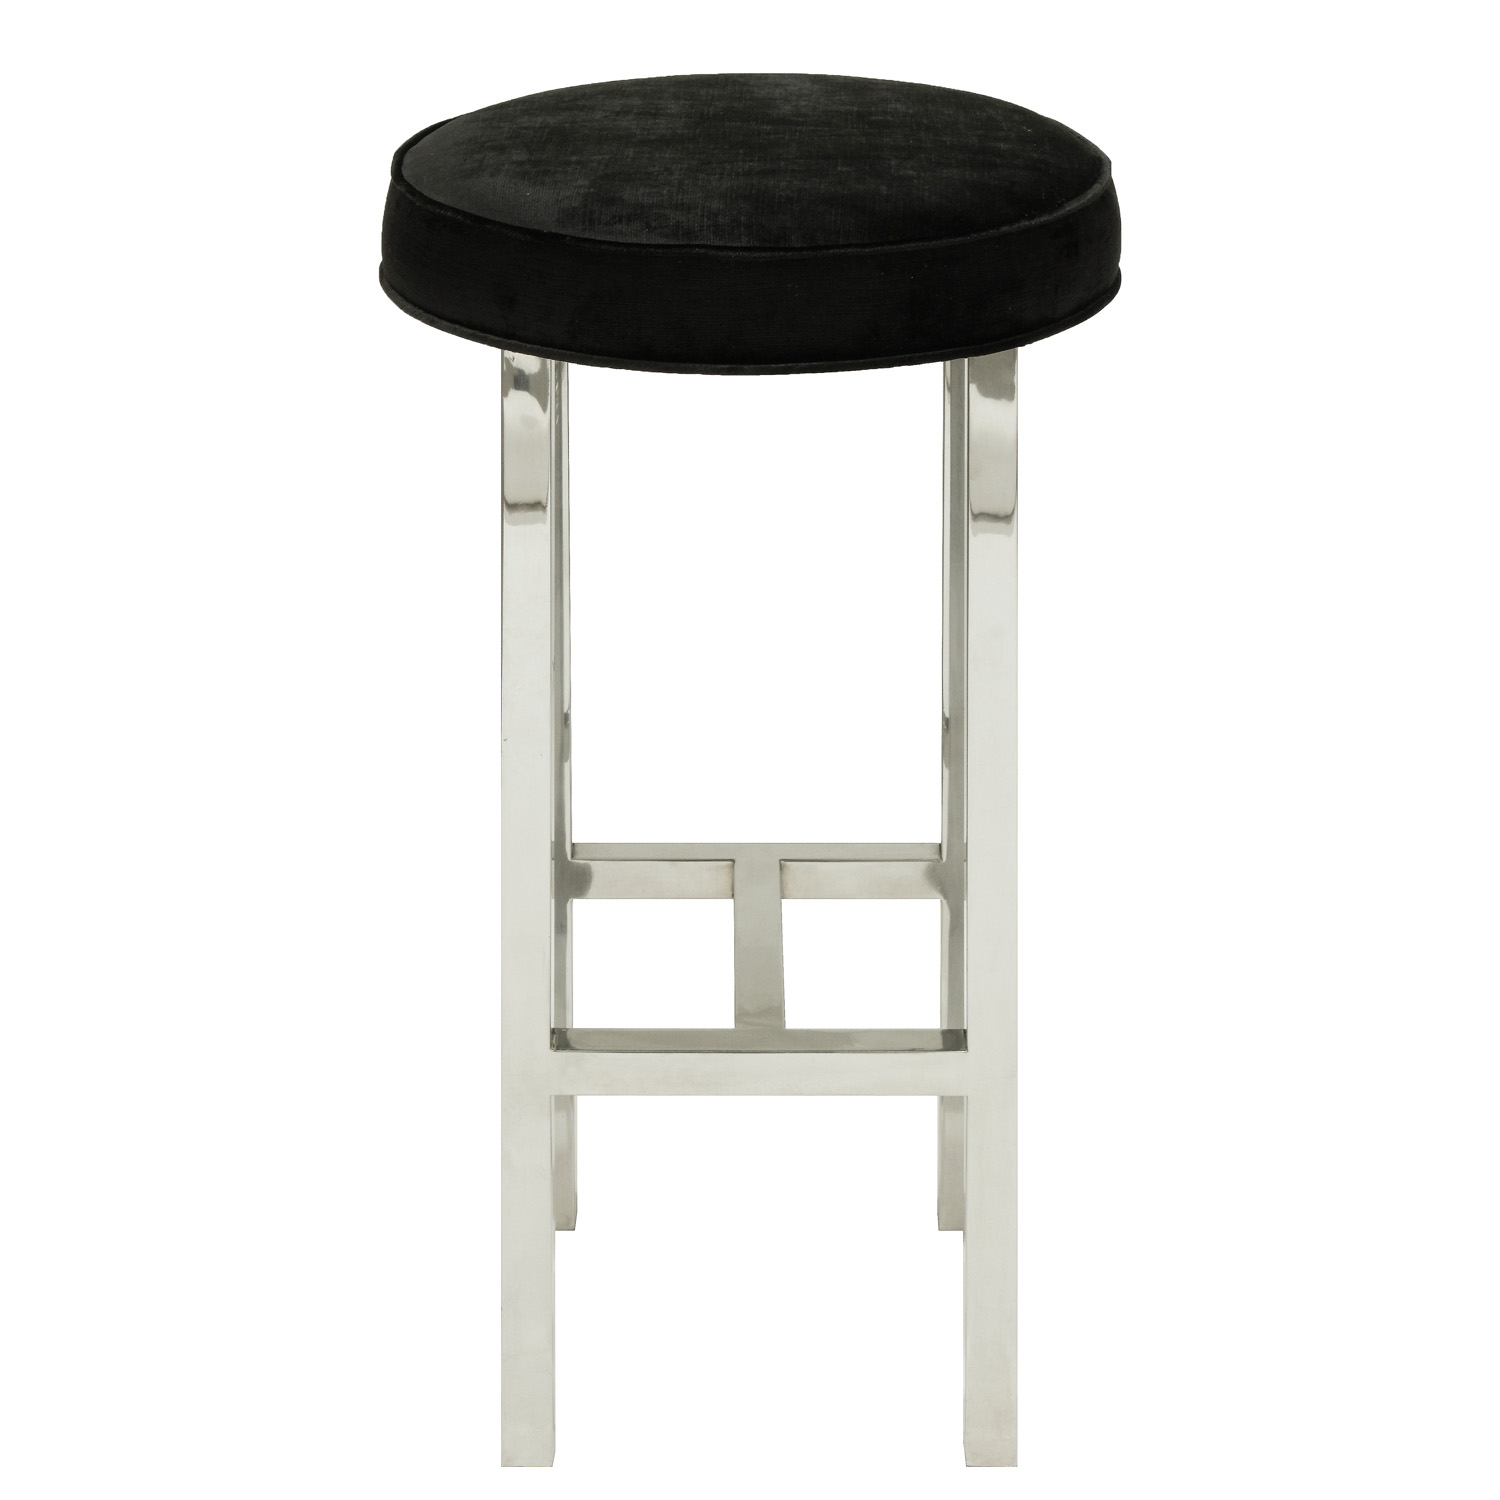 Pace 45 pr stainless pony seats barstools31 fnt.jpg